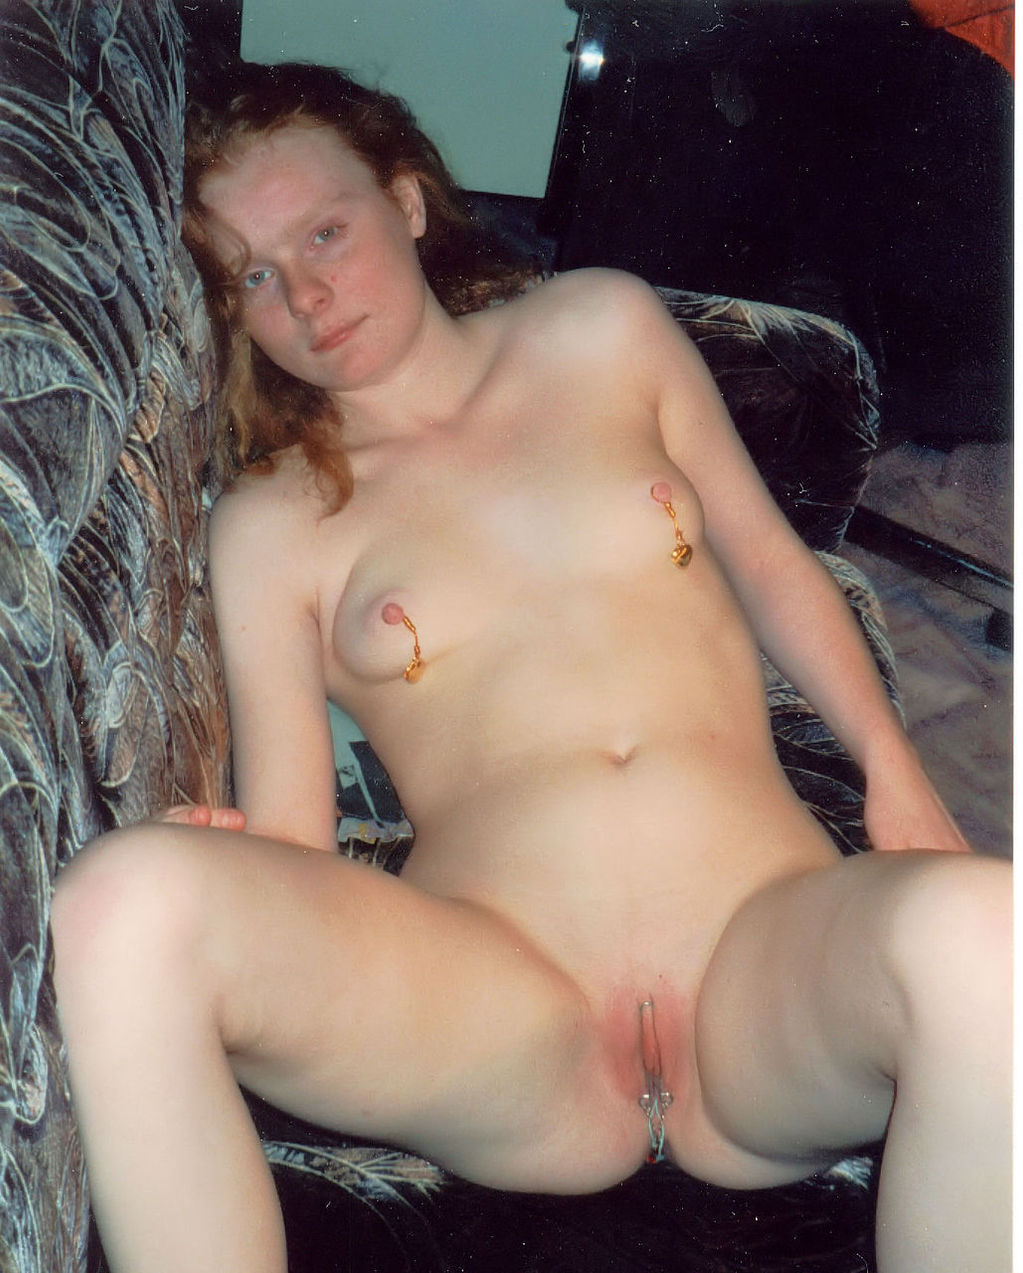 Real Private Pics Shaved Pussy Red Hair Small Tiny Tits Xxx Sex Blowjob Fuck Doggy Hq Big Stolen Pics By Nighthawk Serial B-12.jpg